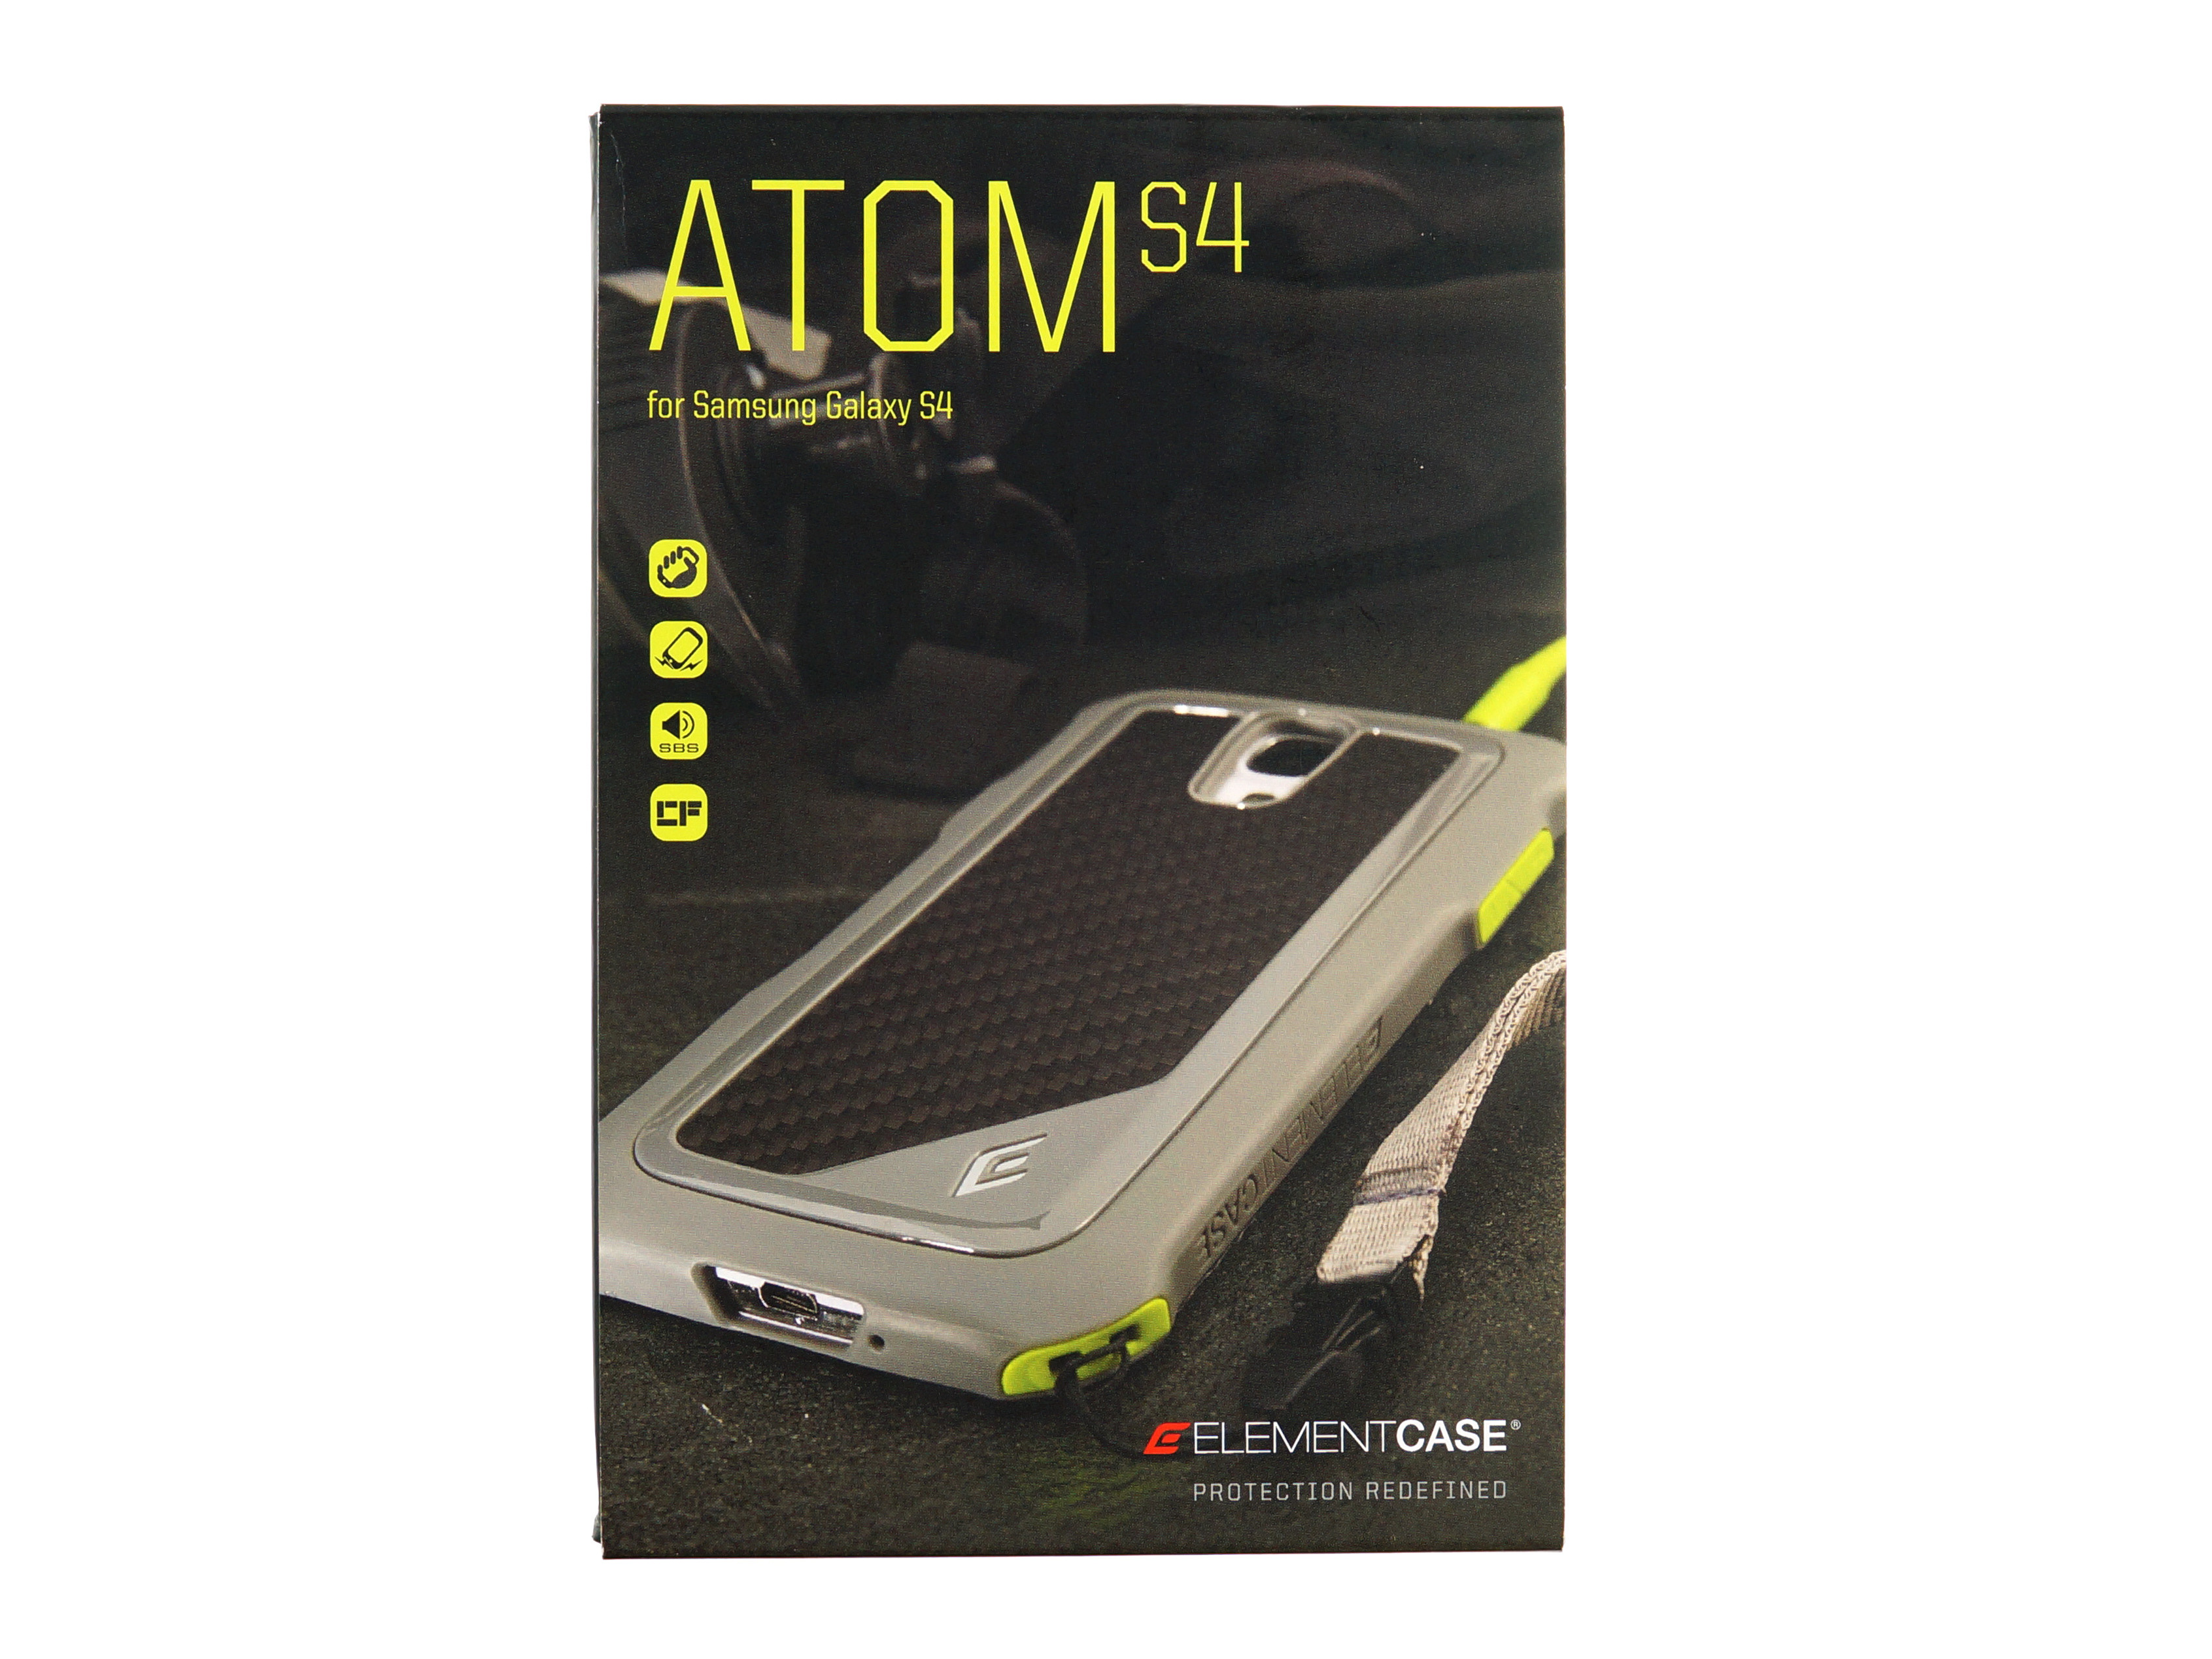 best loved a187d f78f2 Element Case Atom and Eclipse cases for Samsung Galaxy S4 hands-on ...